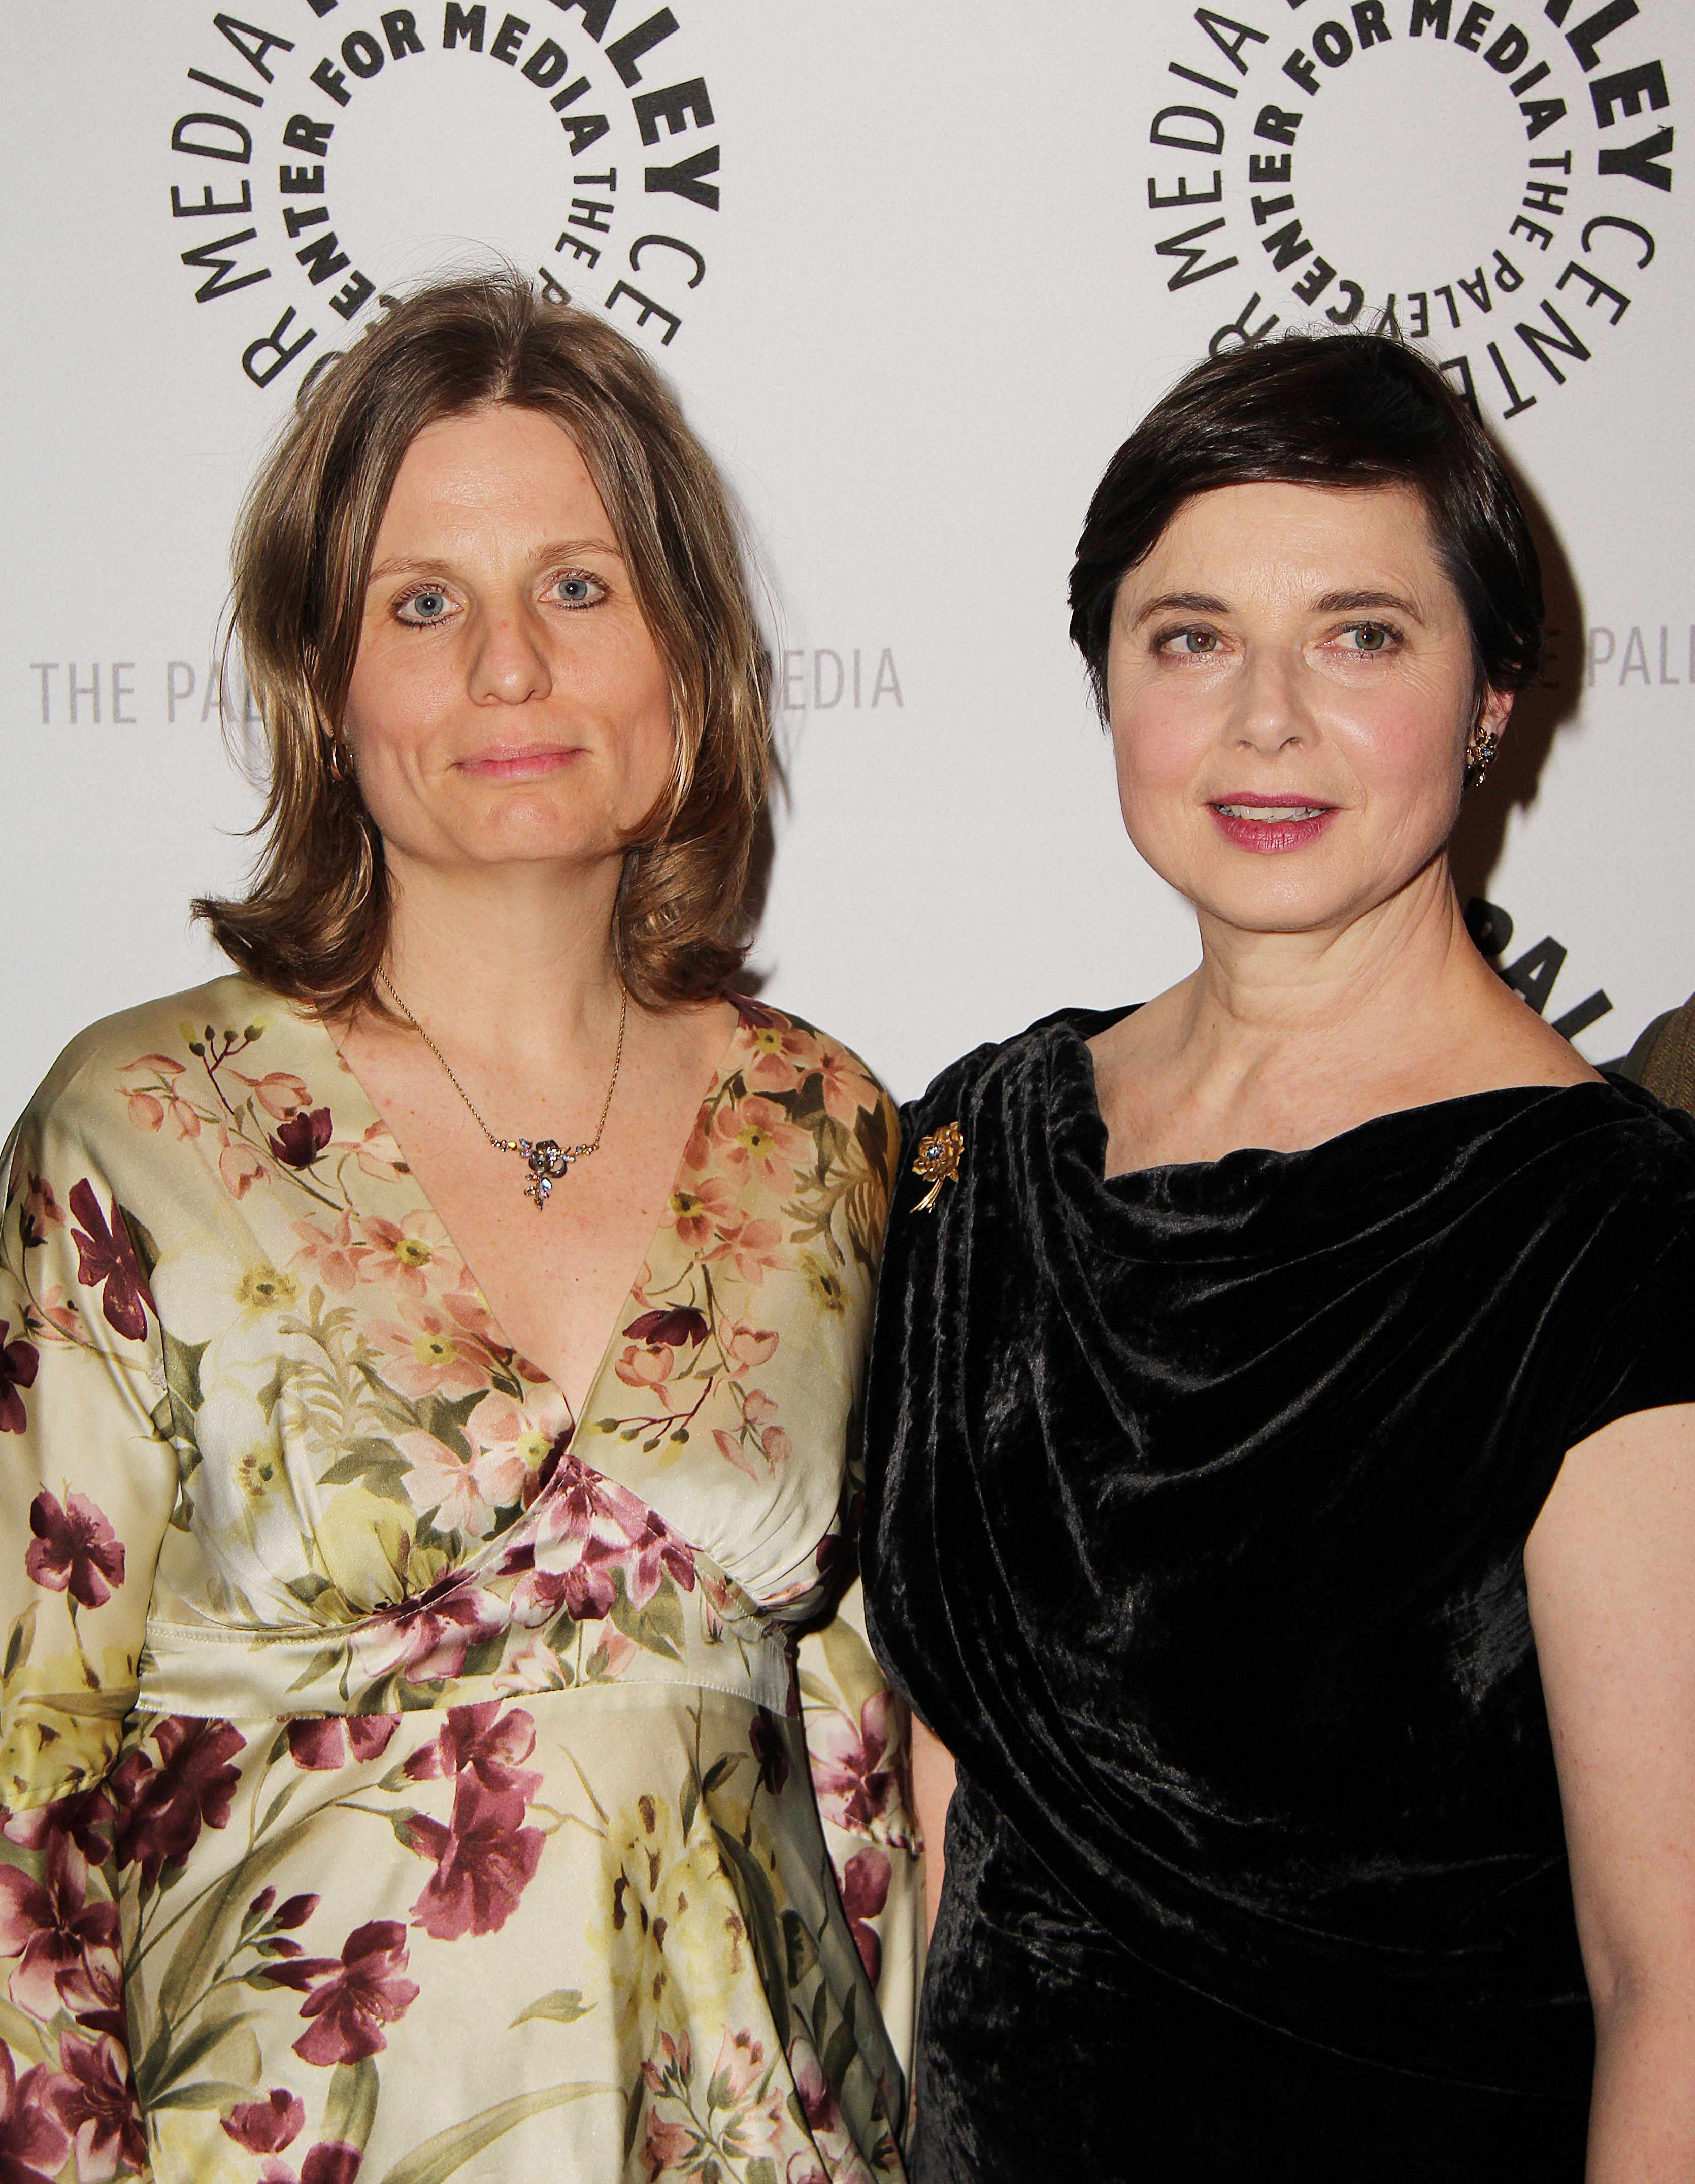 Laura Michalchyshyn, Isabella Rossellini'Animals Distract Me' Film Screening, New York, America - 21 Apr 2011